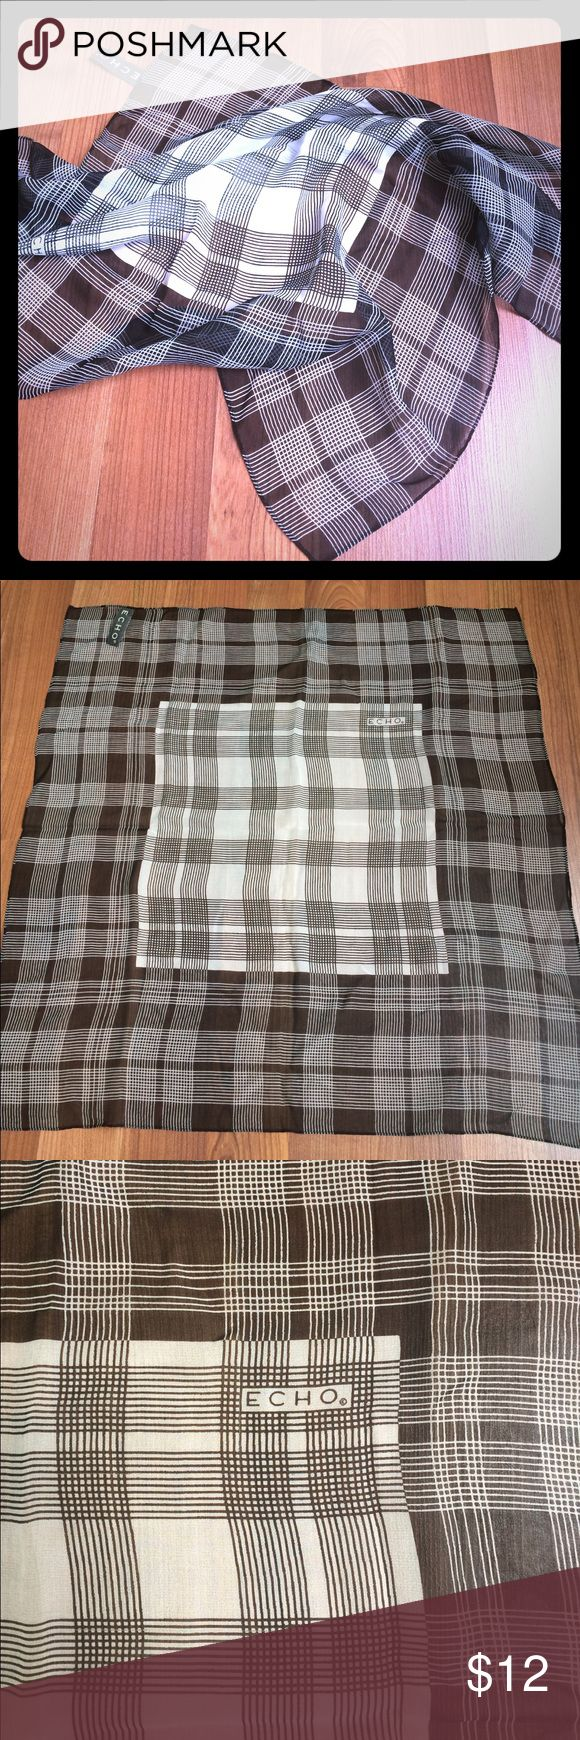 "Silk scarf black and white window pane plaid Lovely sheer silk scarf! Timeless black and white window pane plaid design. Rolled hem. Excellent used condition. 20""X 20"" Echo Accessories Scarves & Wraps"